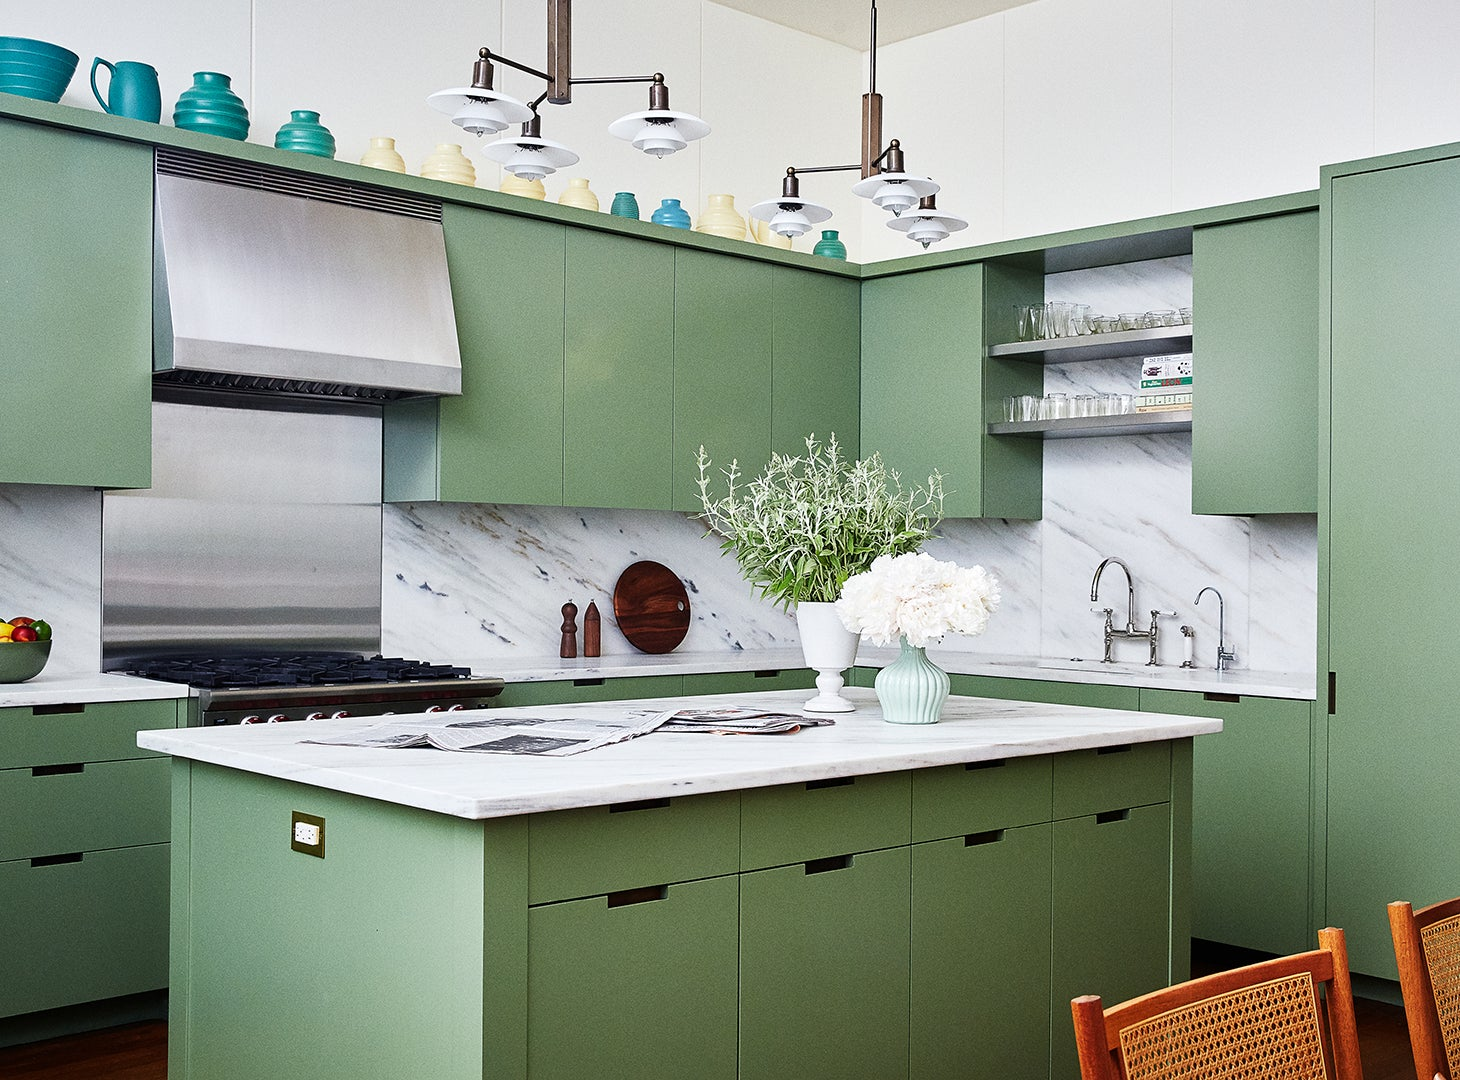 Green kitchen with white marble countertops